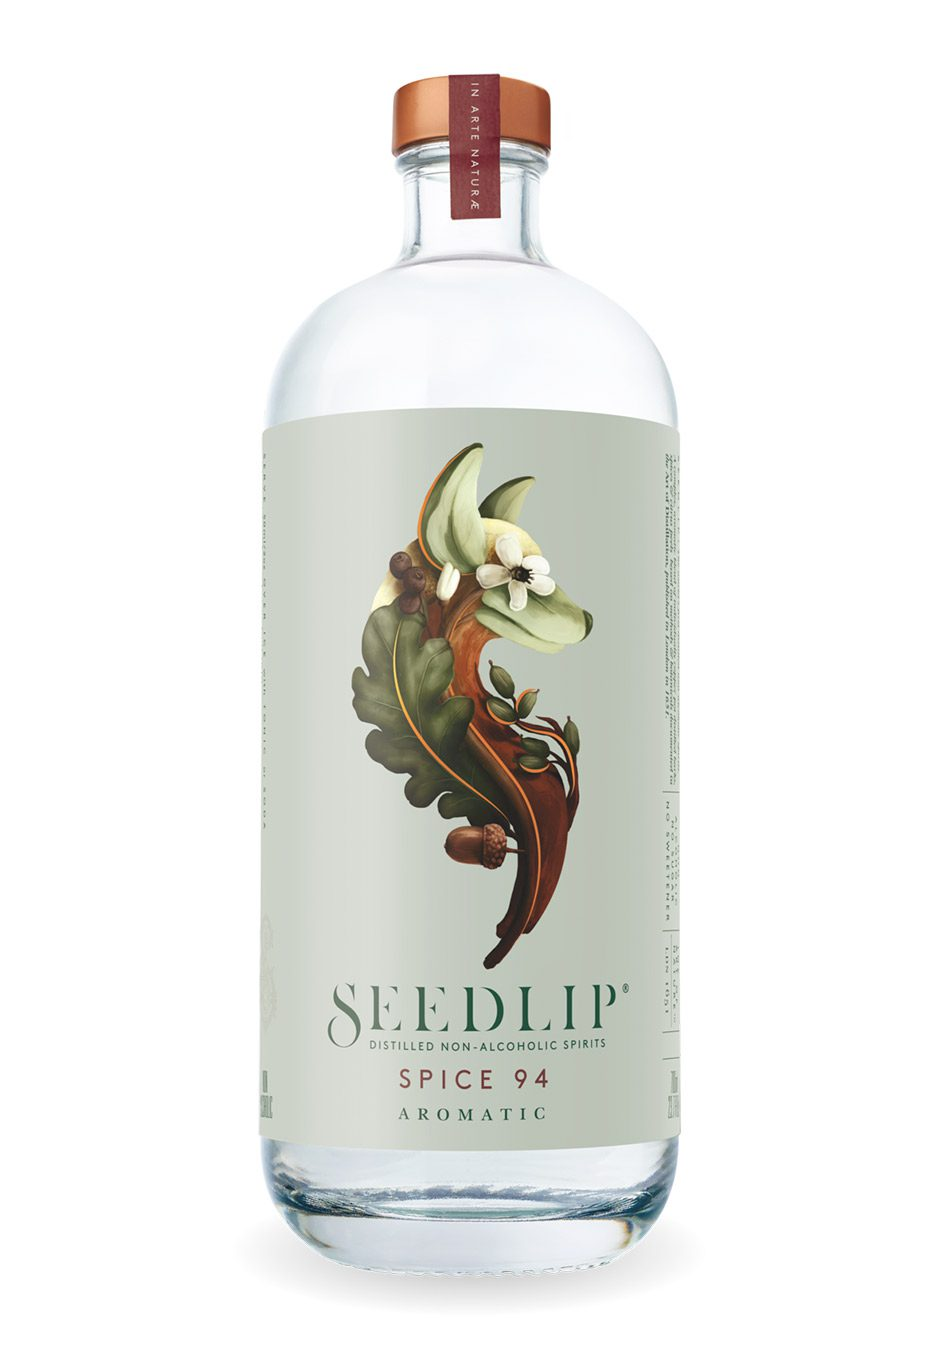 Seedlip Spice 94 | KeiCo Drinks